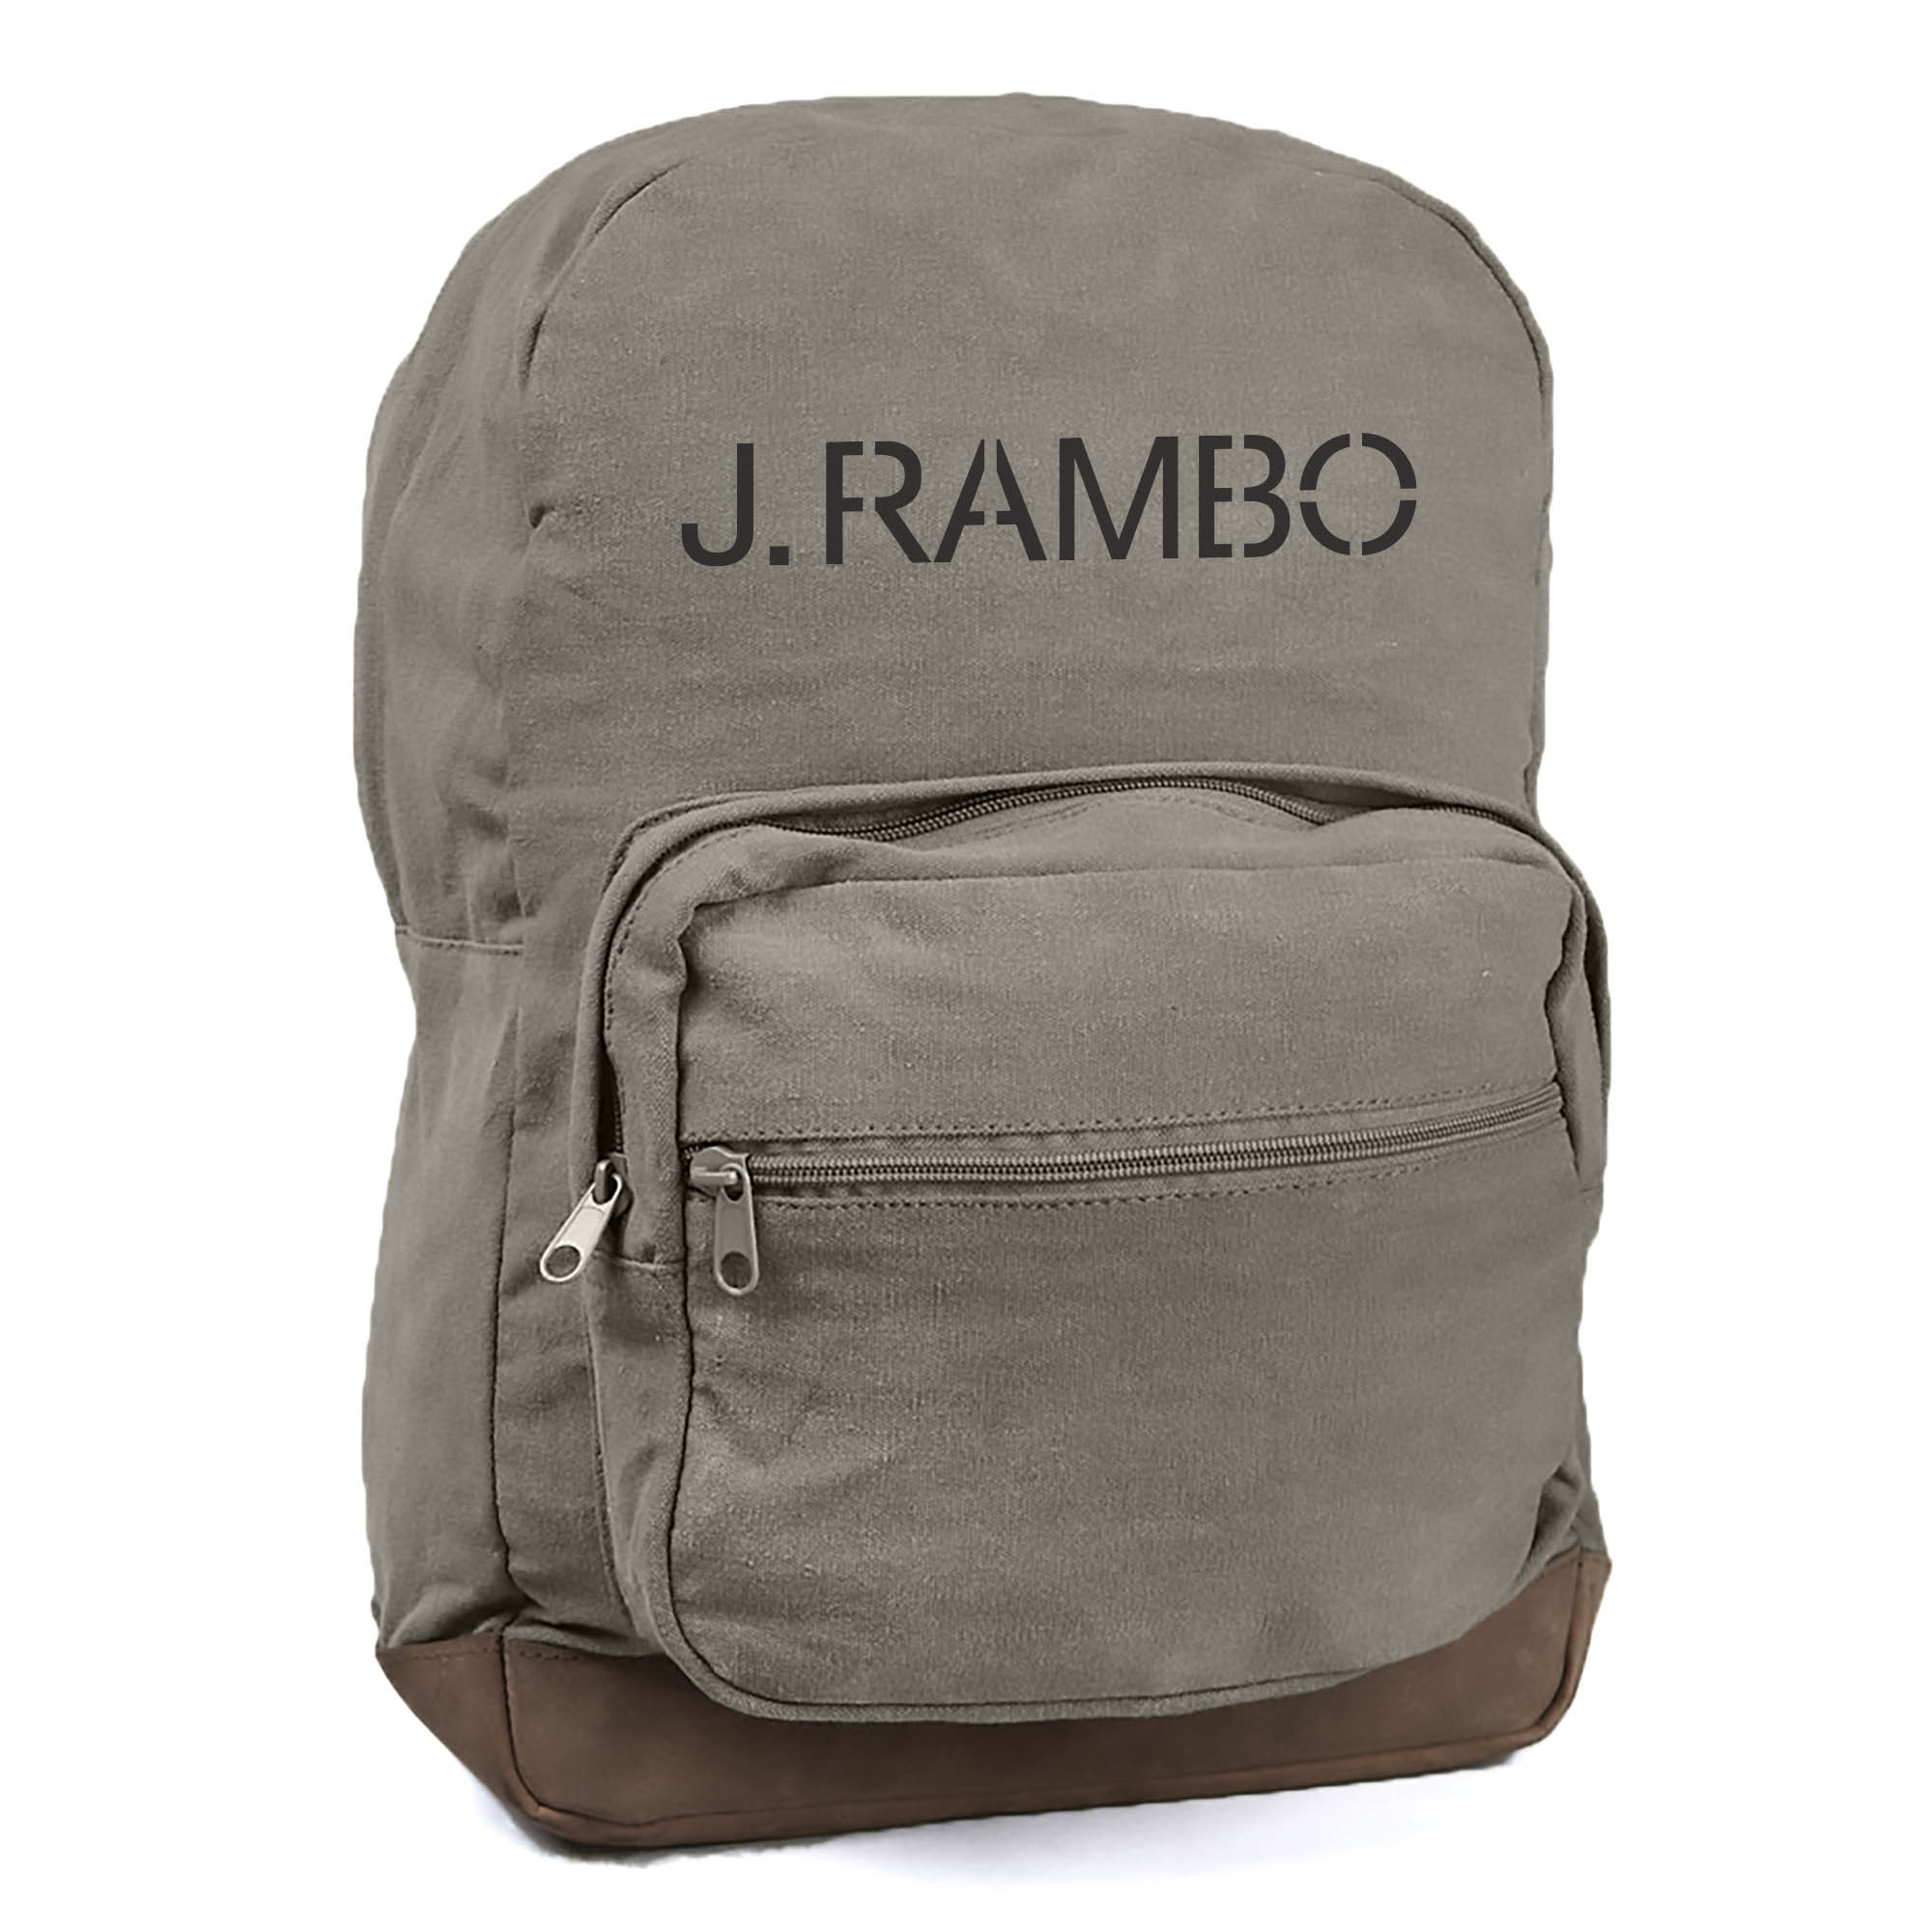 J. RAMBO Backpack